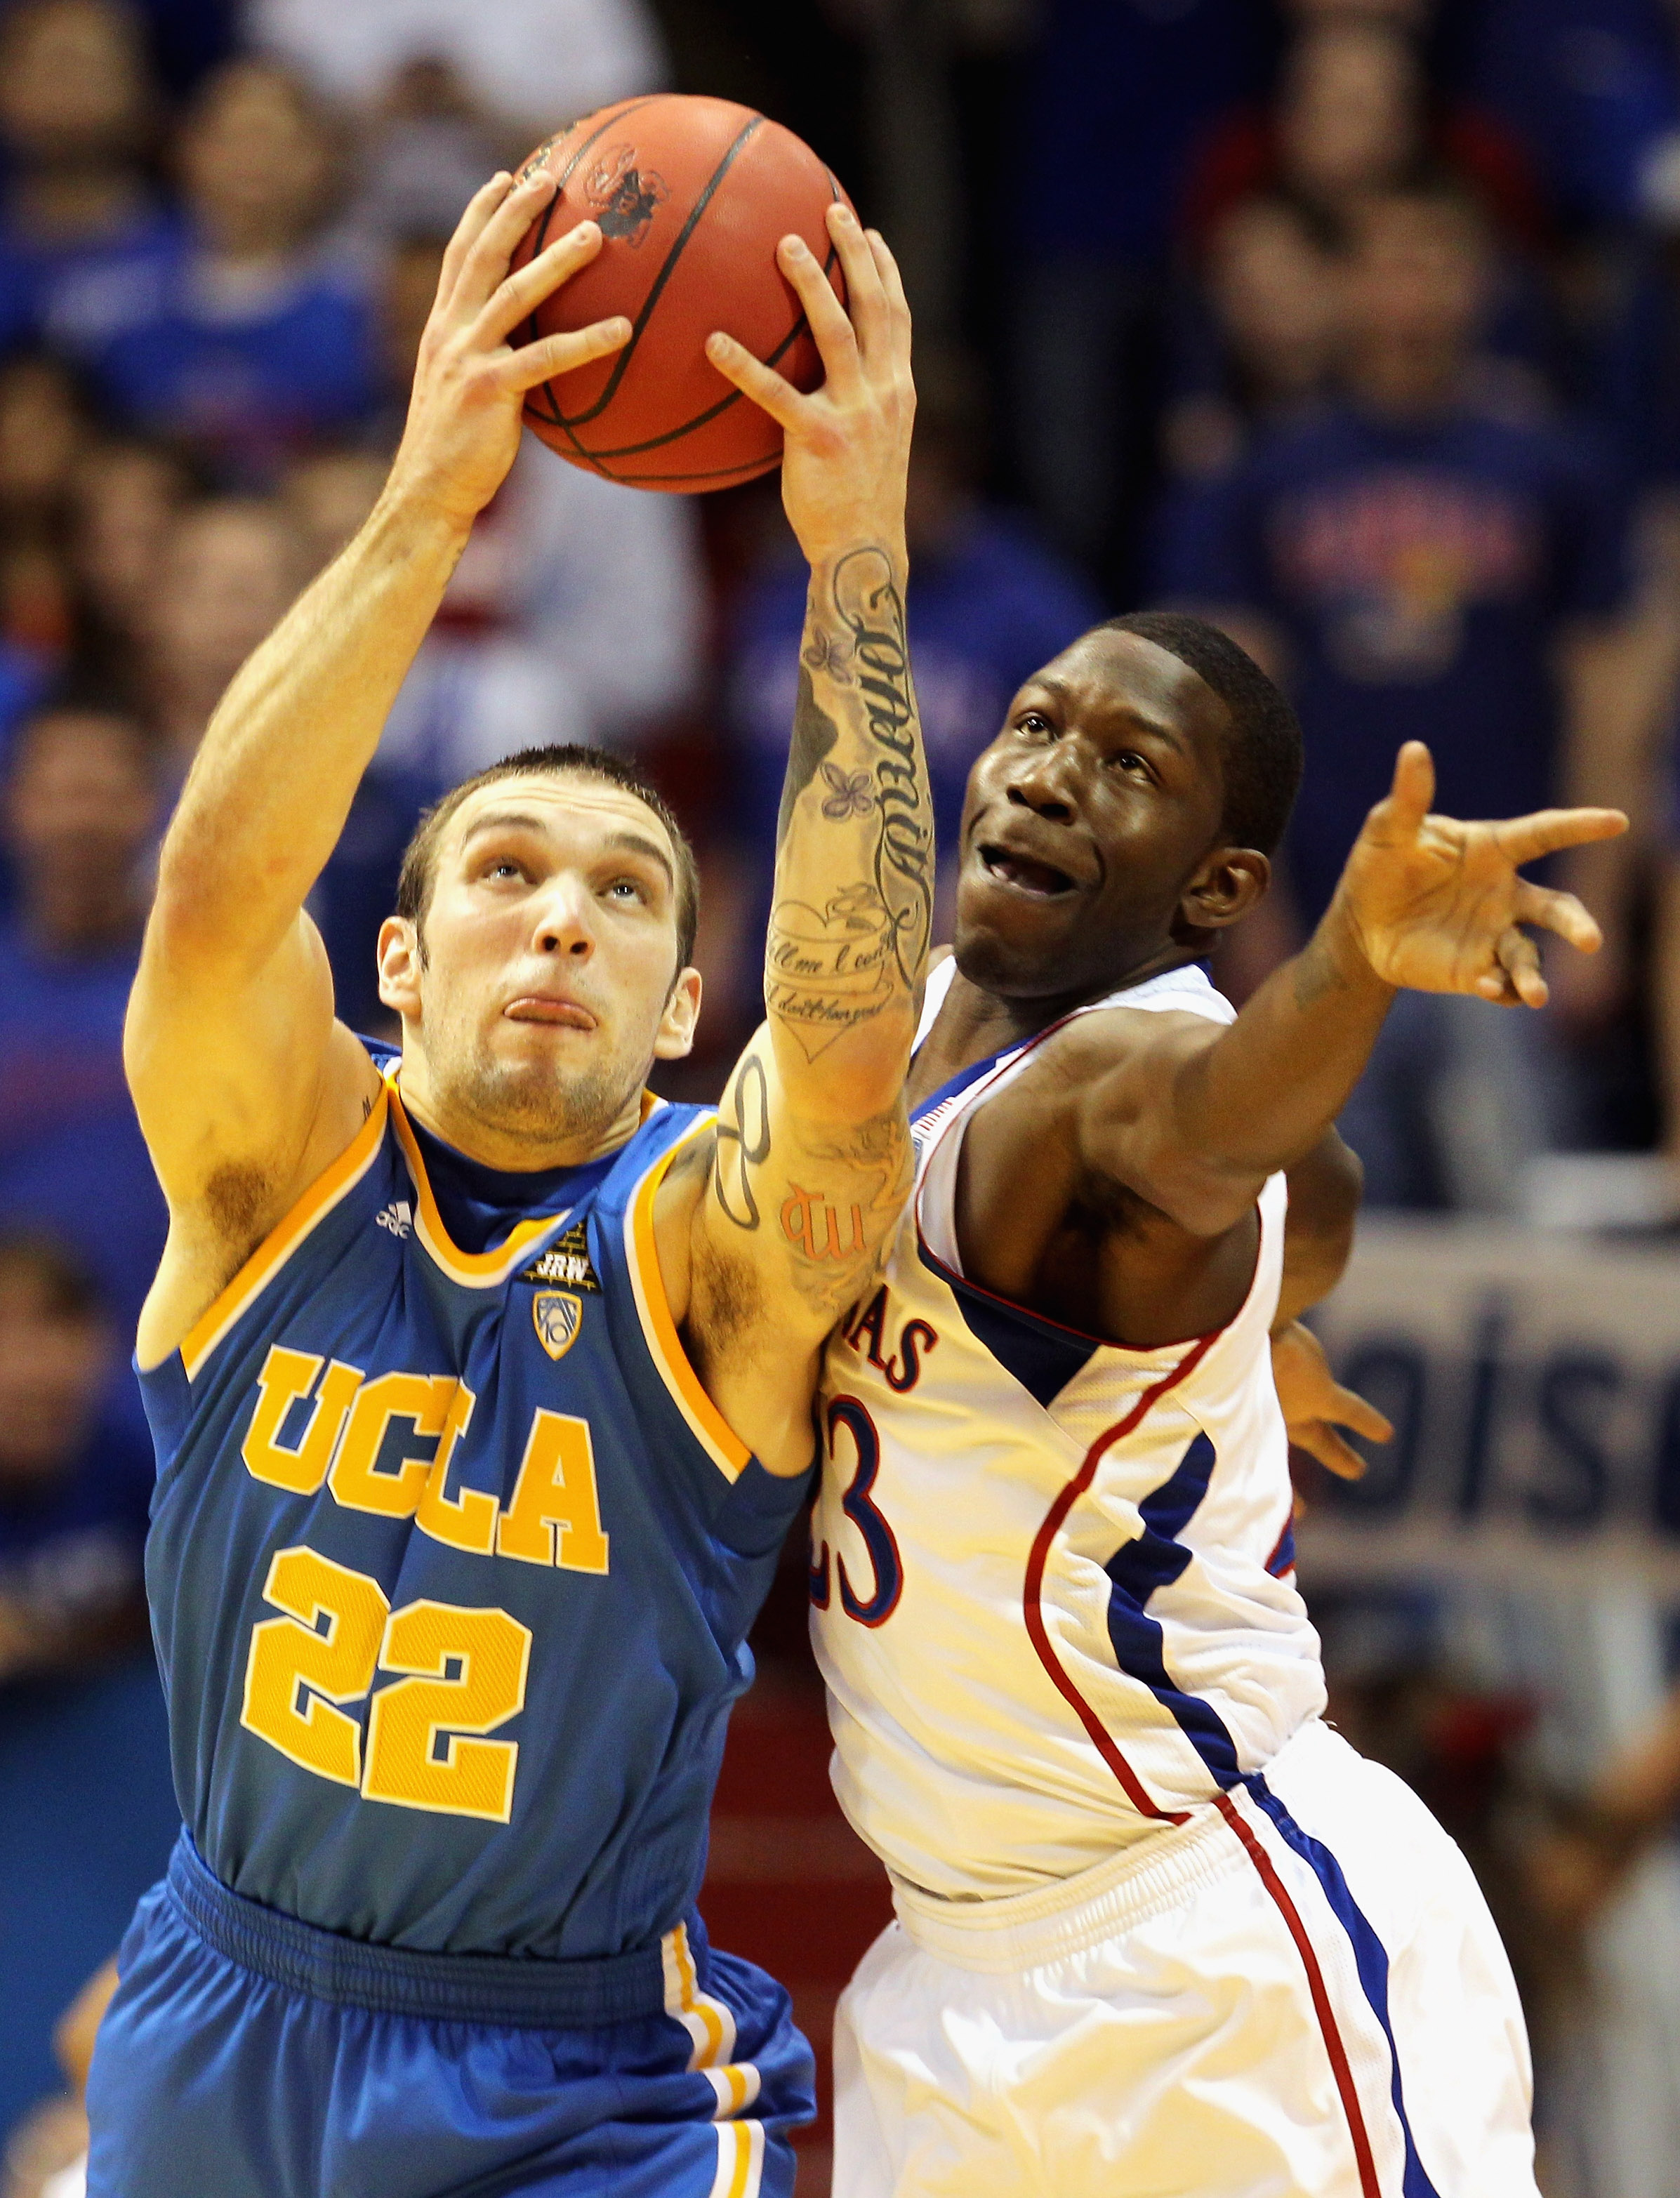 LAWRENCE, KS - DECEMBER 02:  Reeves Nelson #22 of the UCLA Bruins and Mario Little #23 of the Kansas Jayhawks battle for a loose ball during the game on December 2, 2010 at Allen Fieldhouse in Lawrence, Kansas.  (Photo by Jamie Squire/Getty Images)